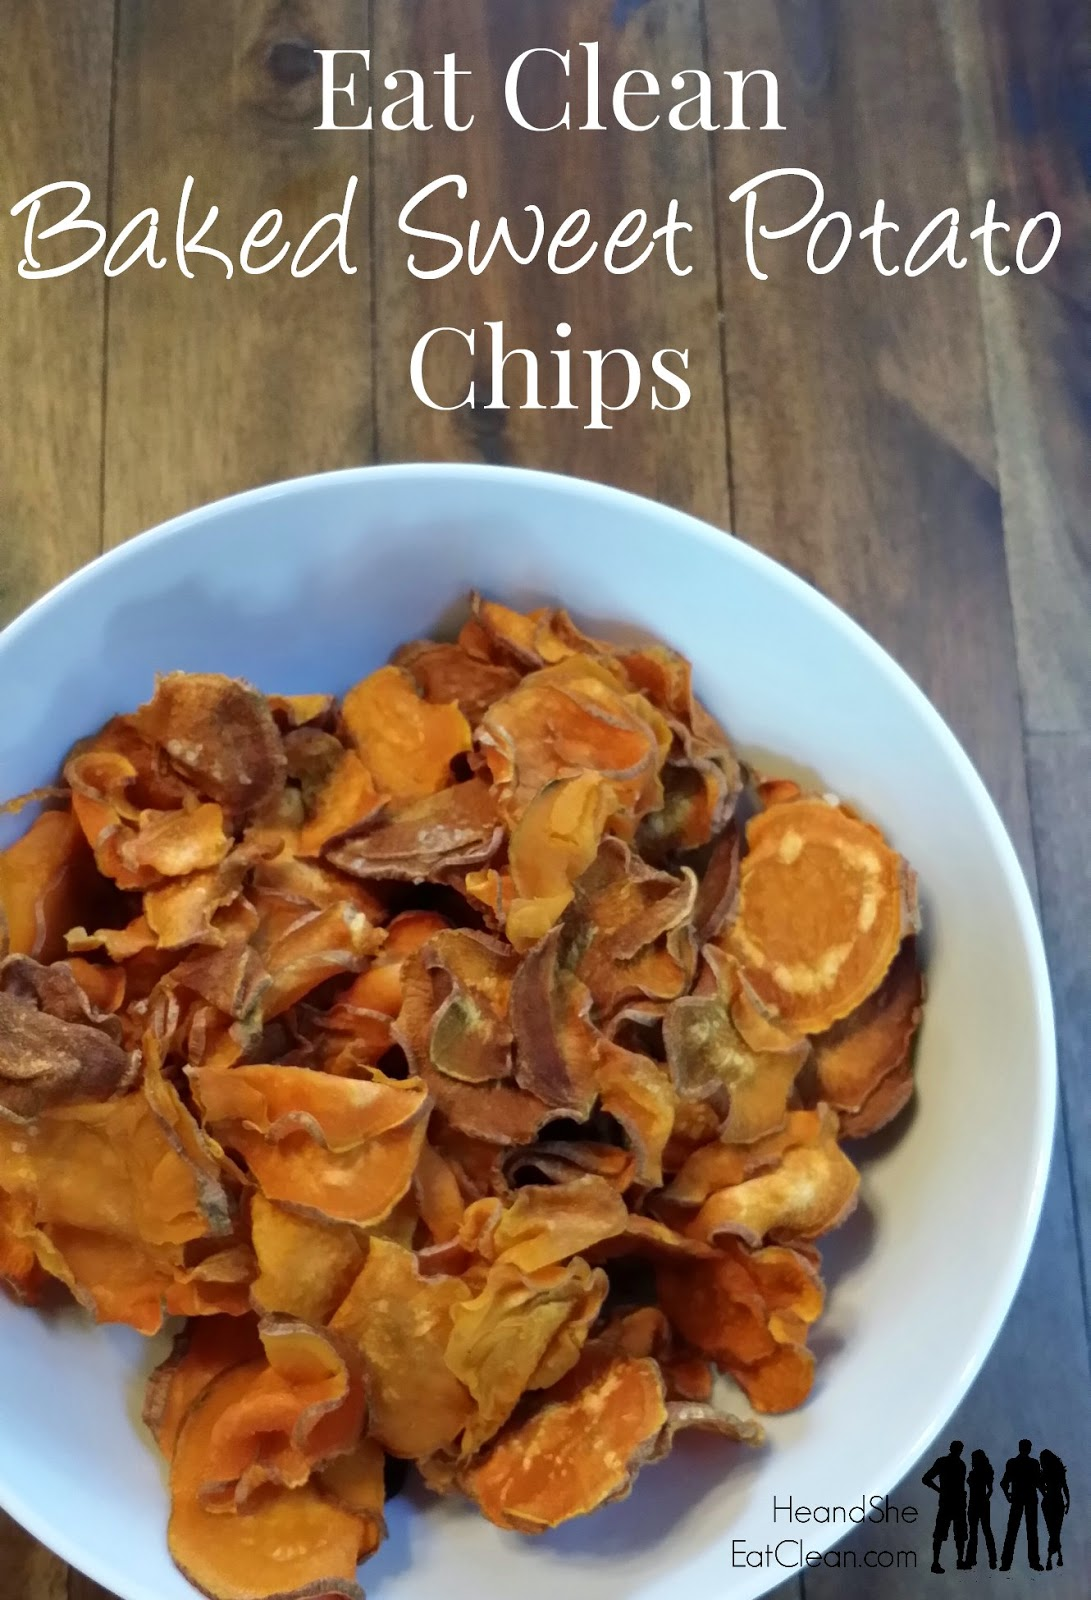 Eat Clean Baked Sweet Potato Chips ~ He and She Eat Clean